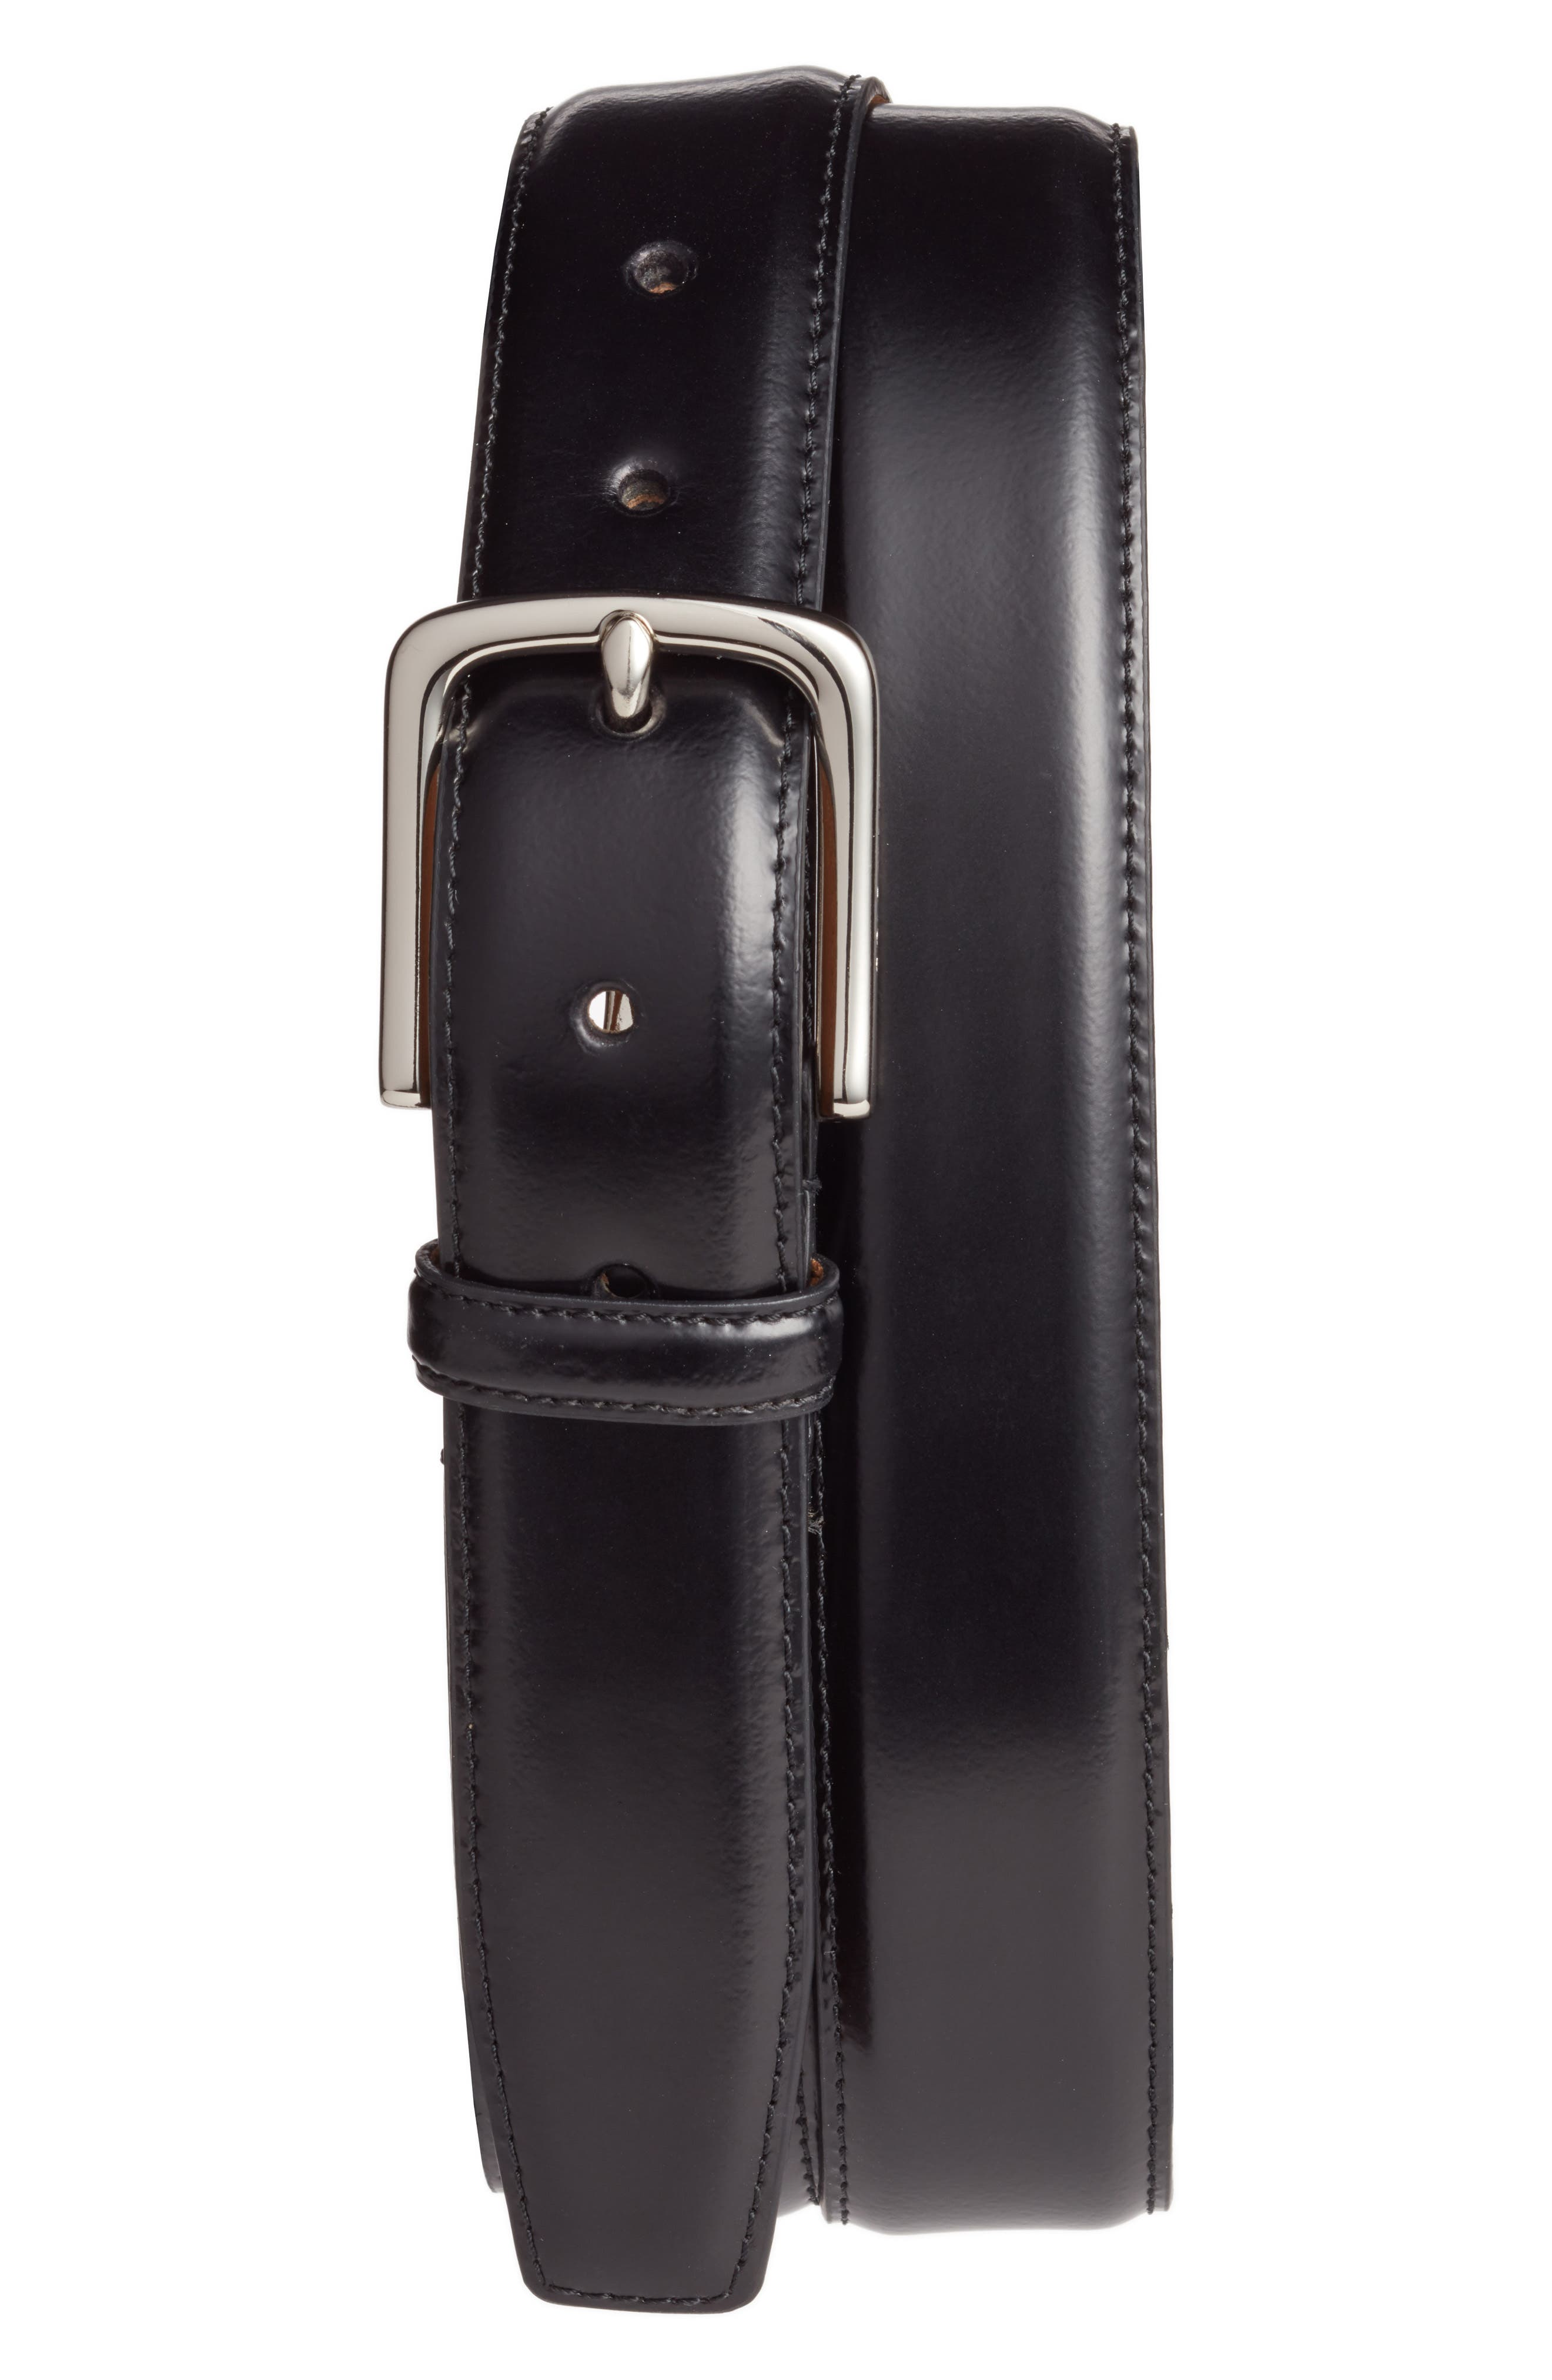 COLE HAAN Leather Belt, Main, color, BLACK WITH POLISHED NICKEL